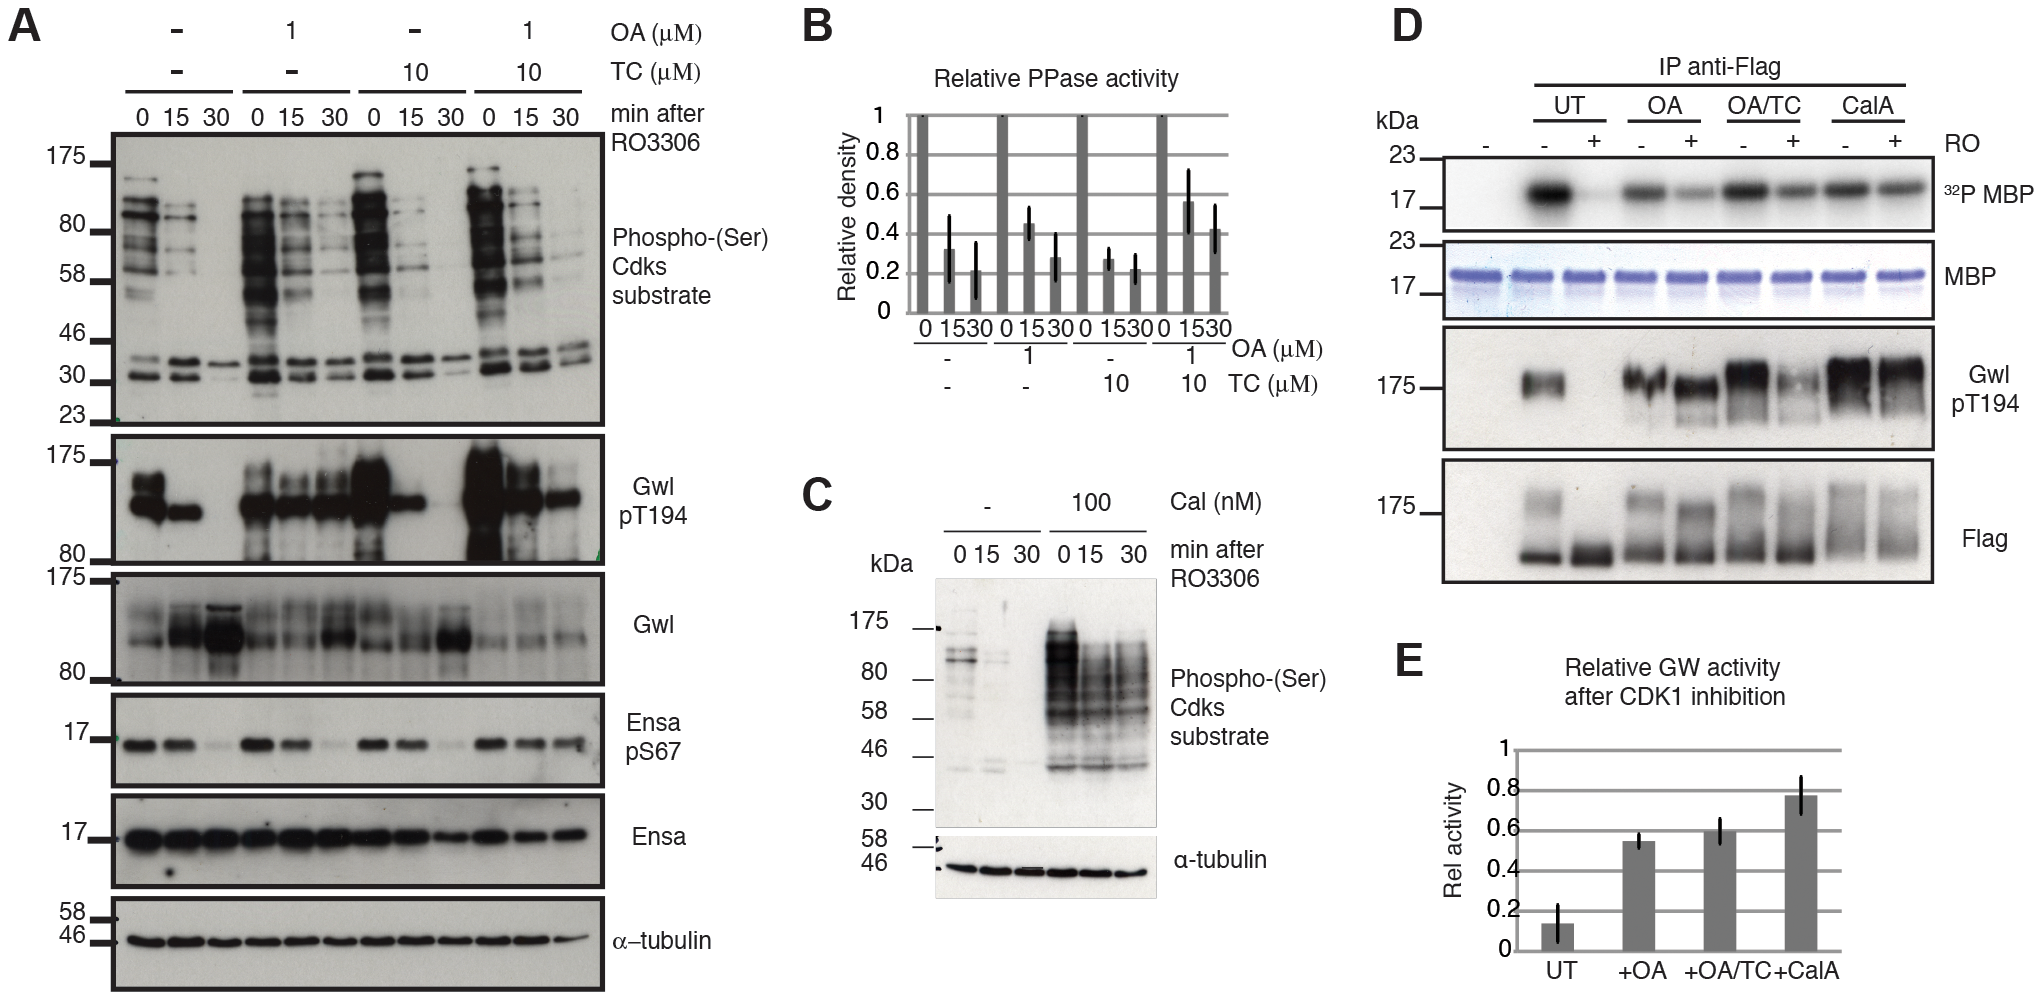 Characterizing Gwl, Ensa/ARPP19 and SP dephosphorylation during mitotic exit.